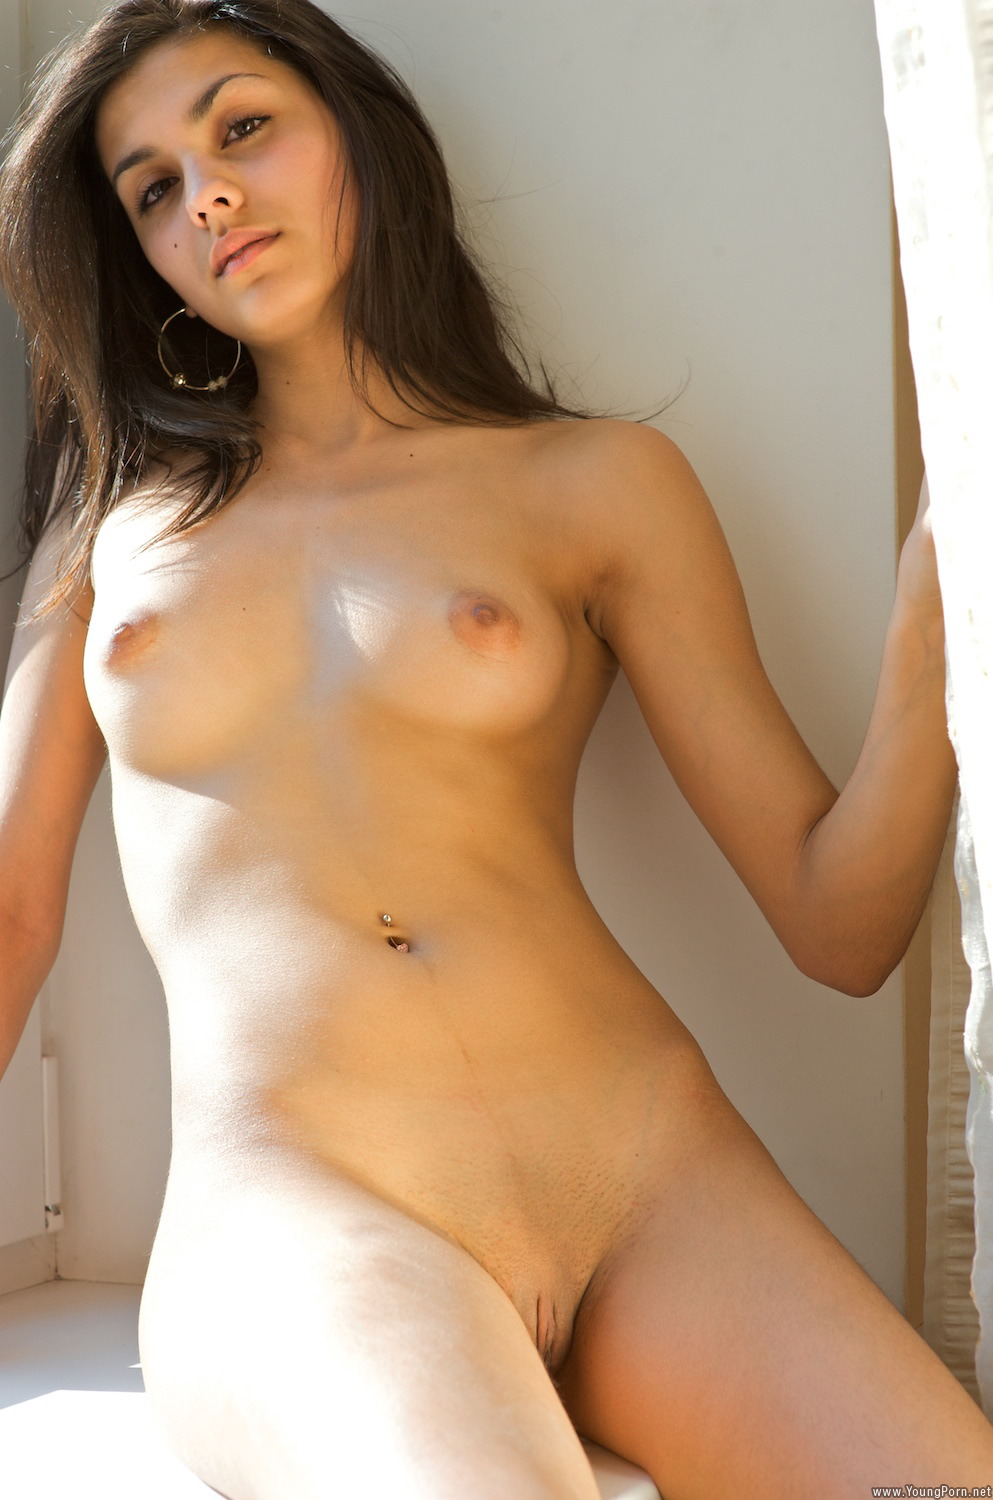 My Xzone Nude Indian Girls -2-9388